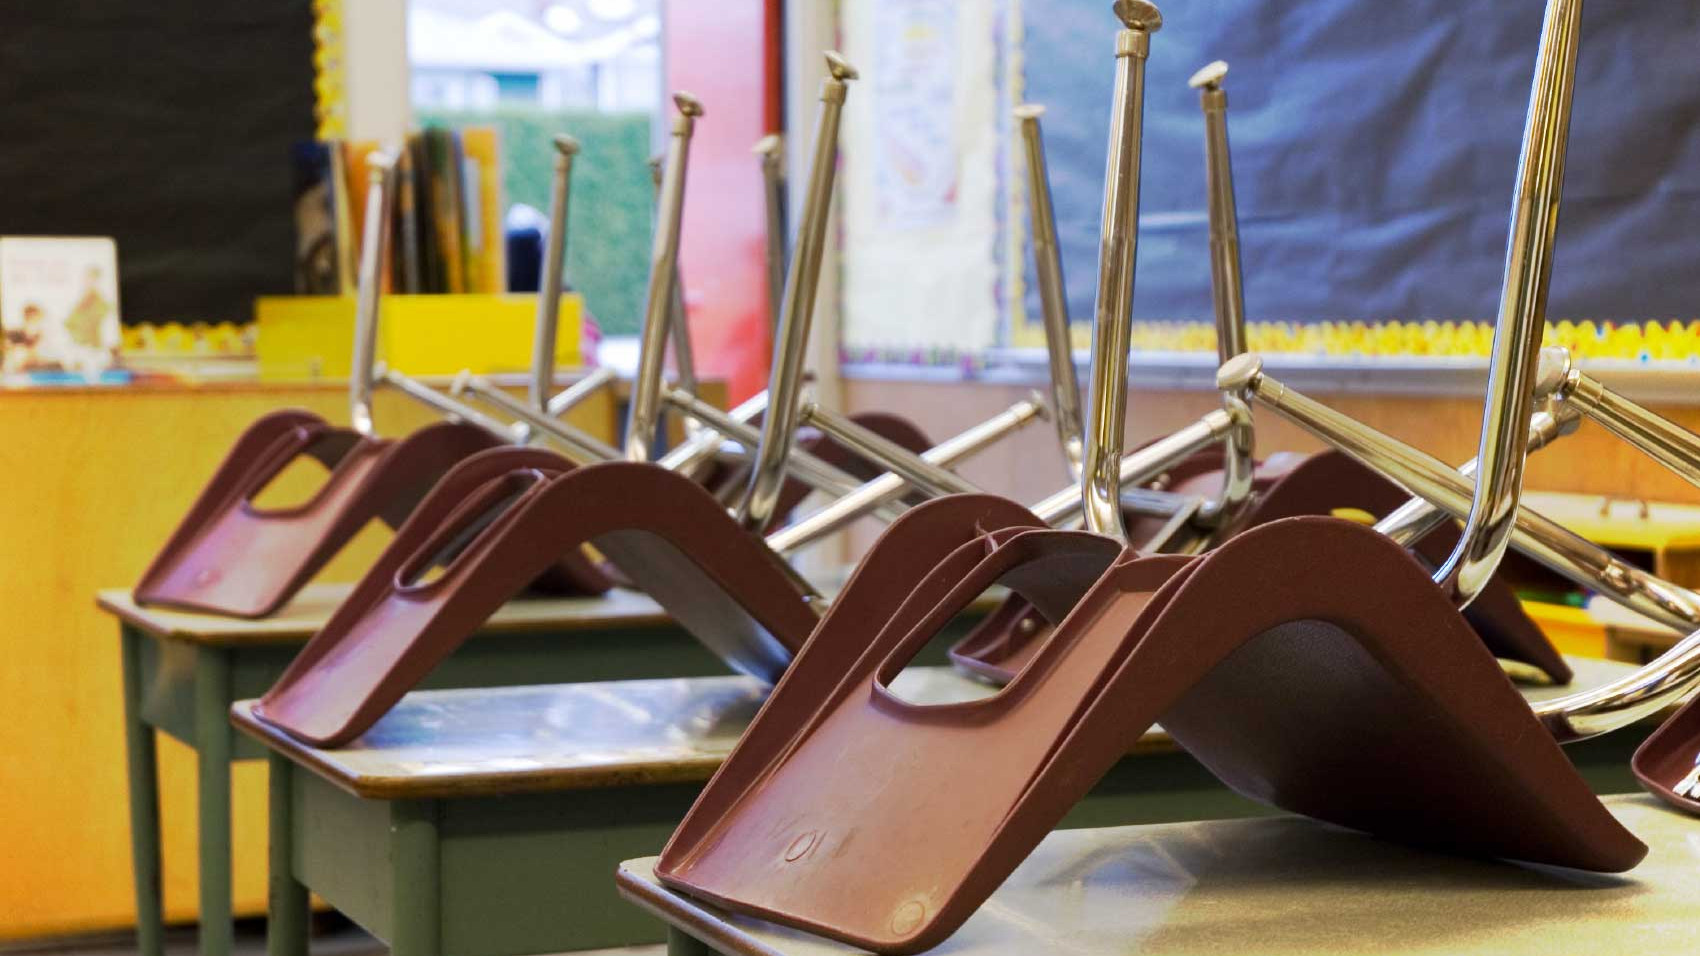 After-school-chairs-on-desk-1700x1129